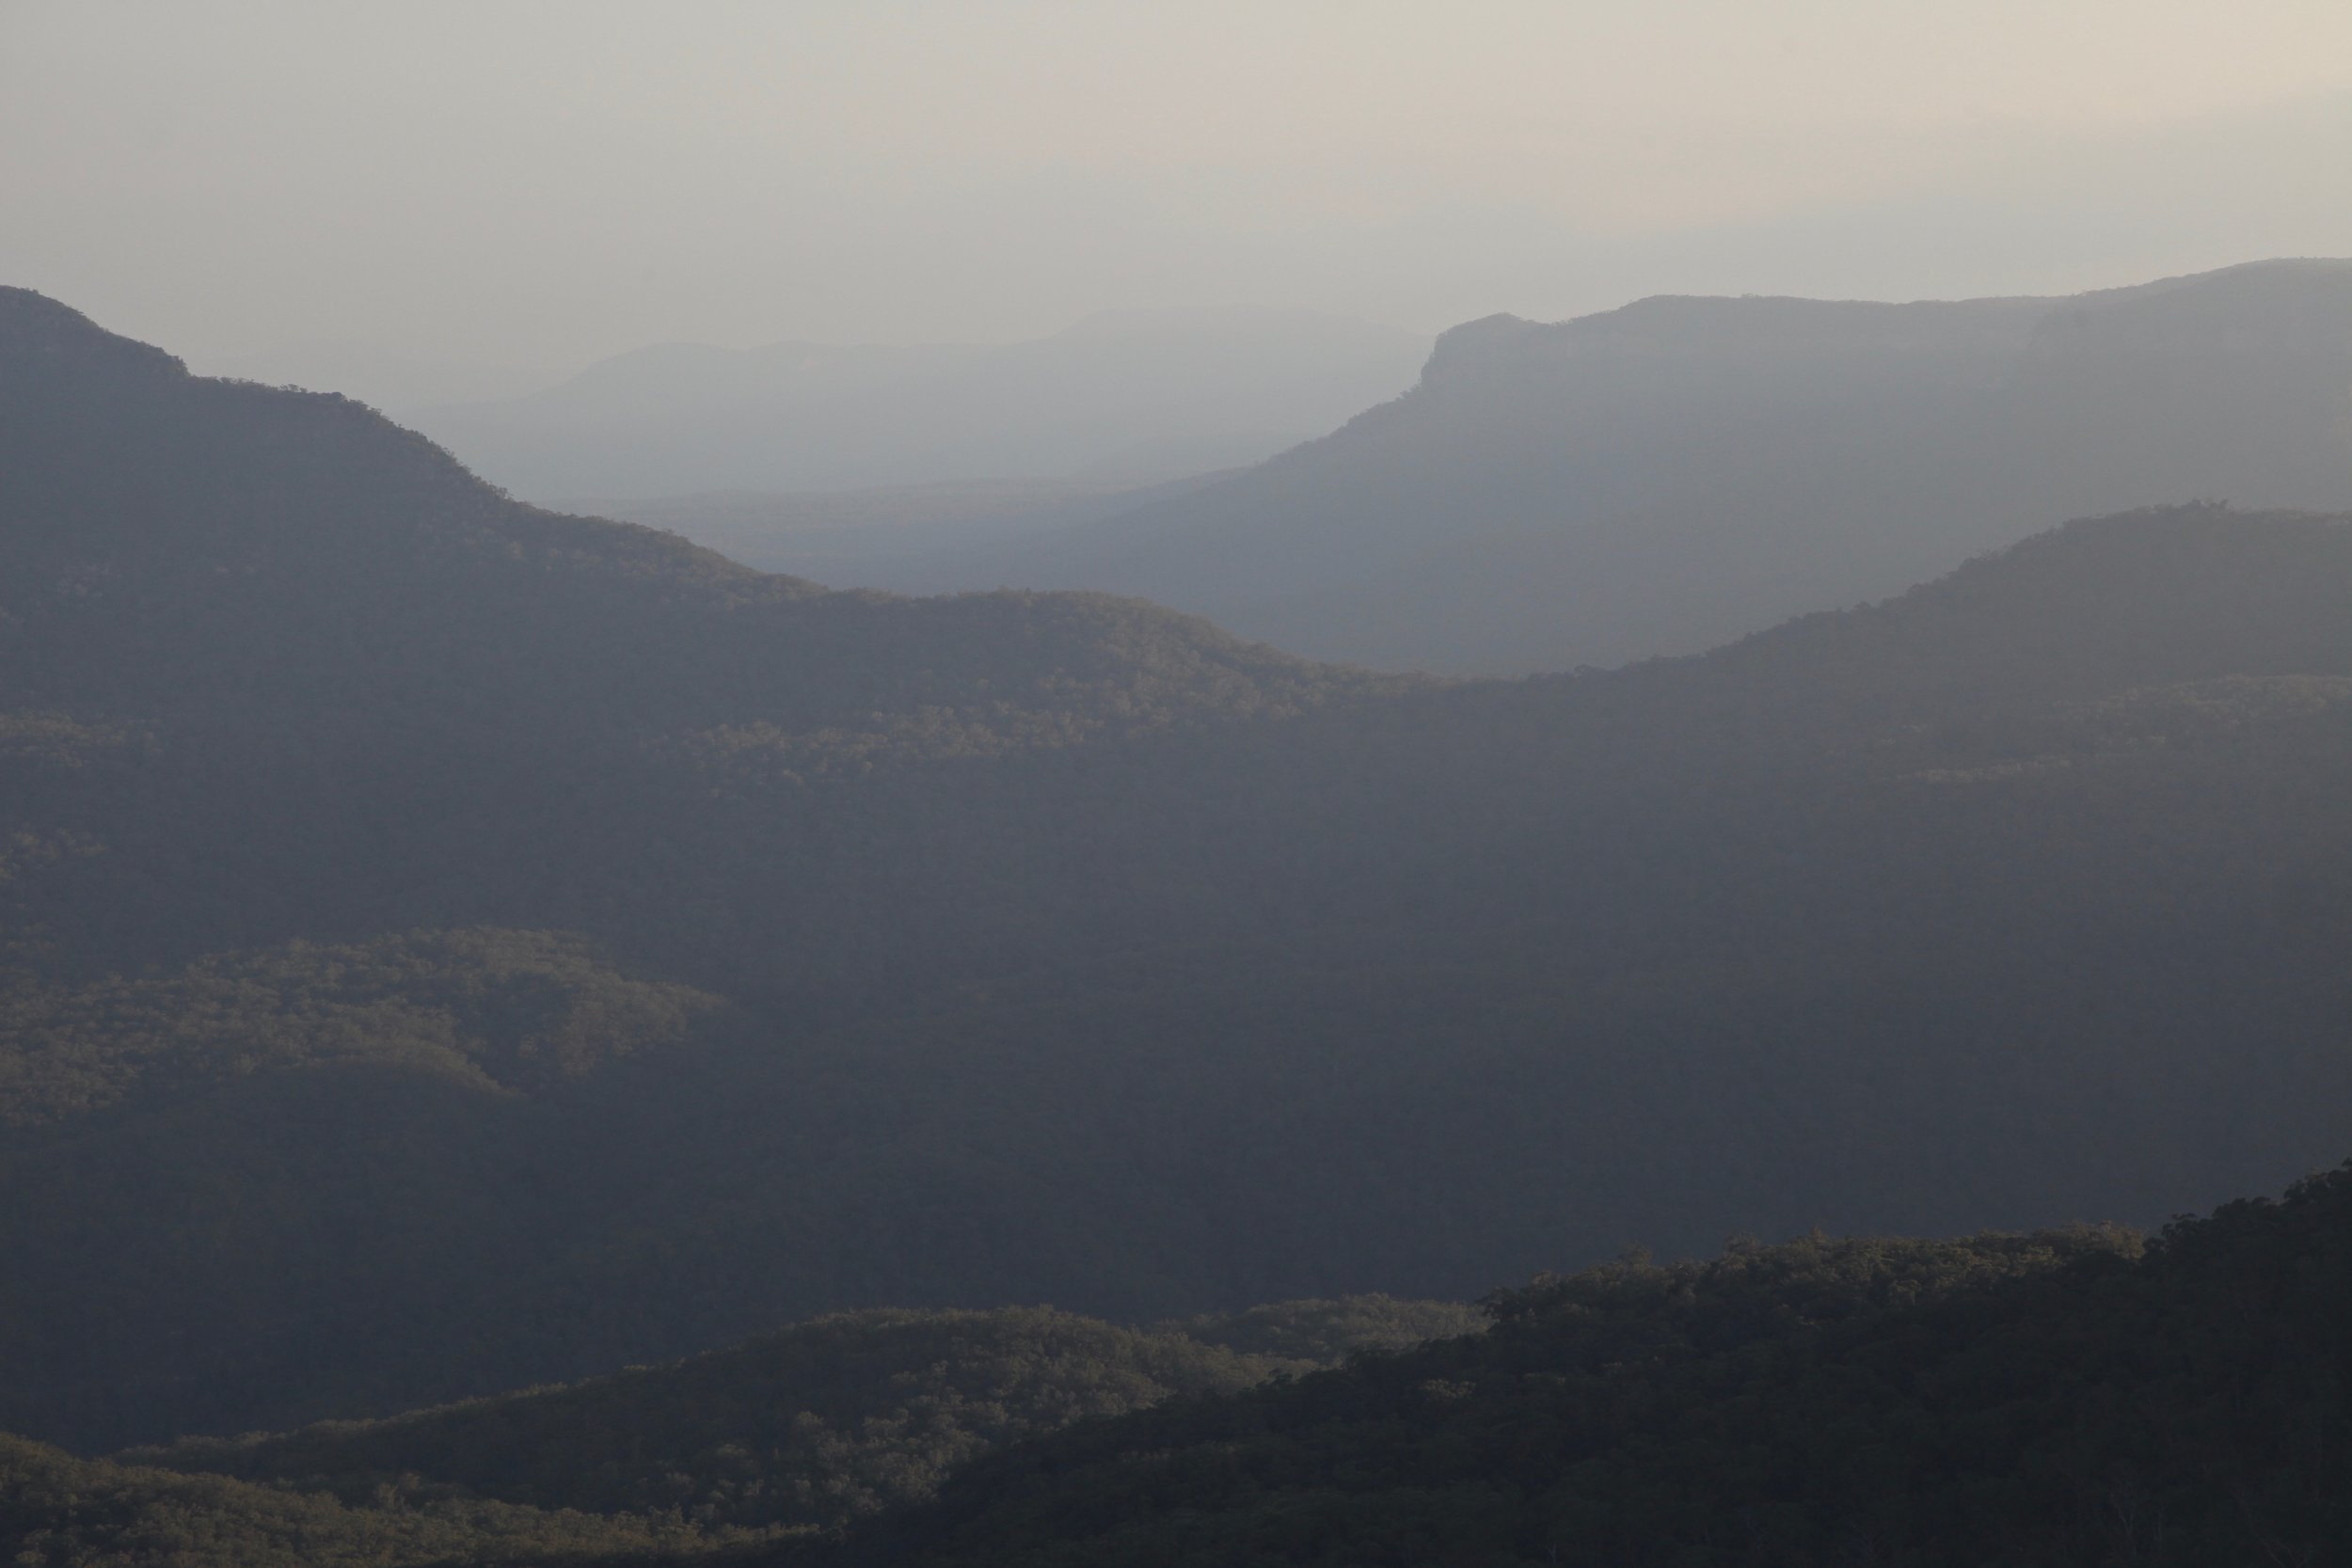 Afternoon golden hour light in the Blue Mountains.